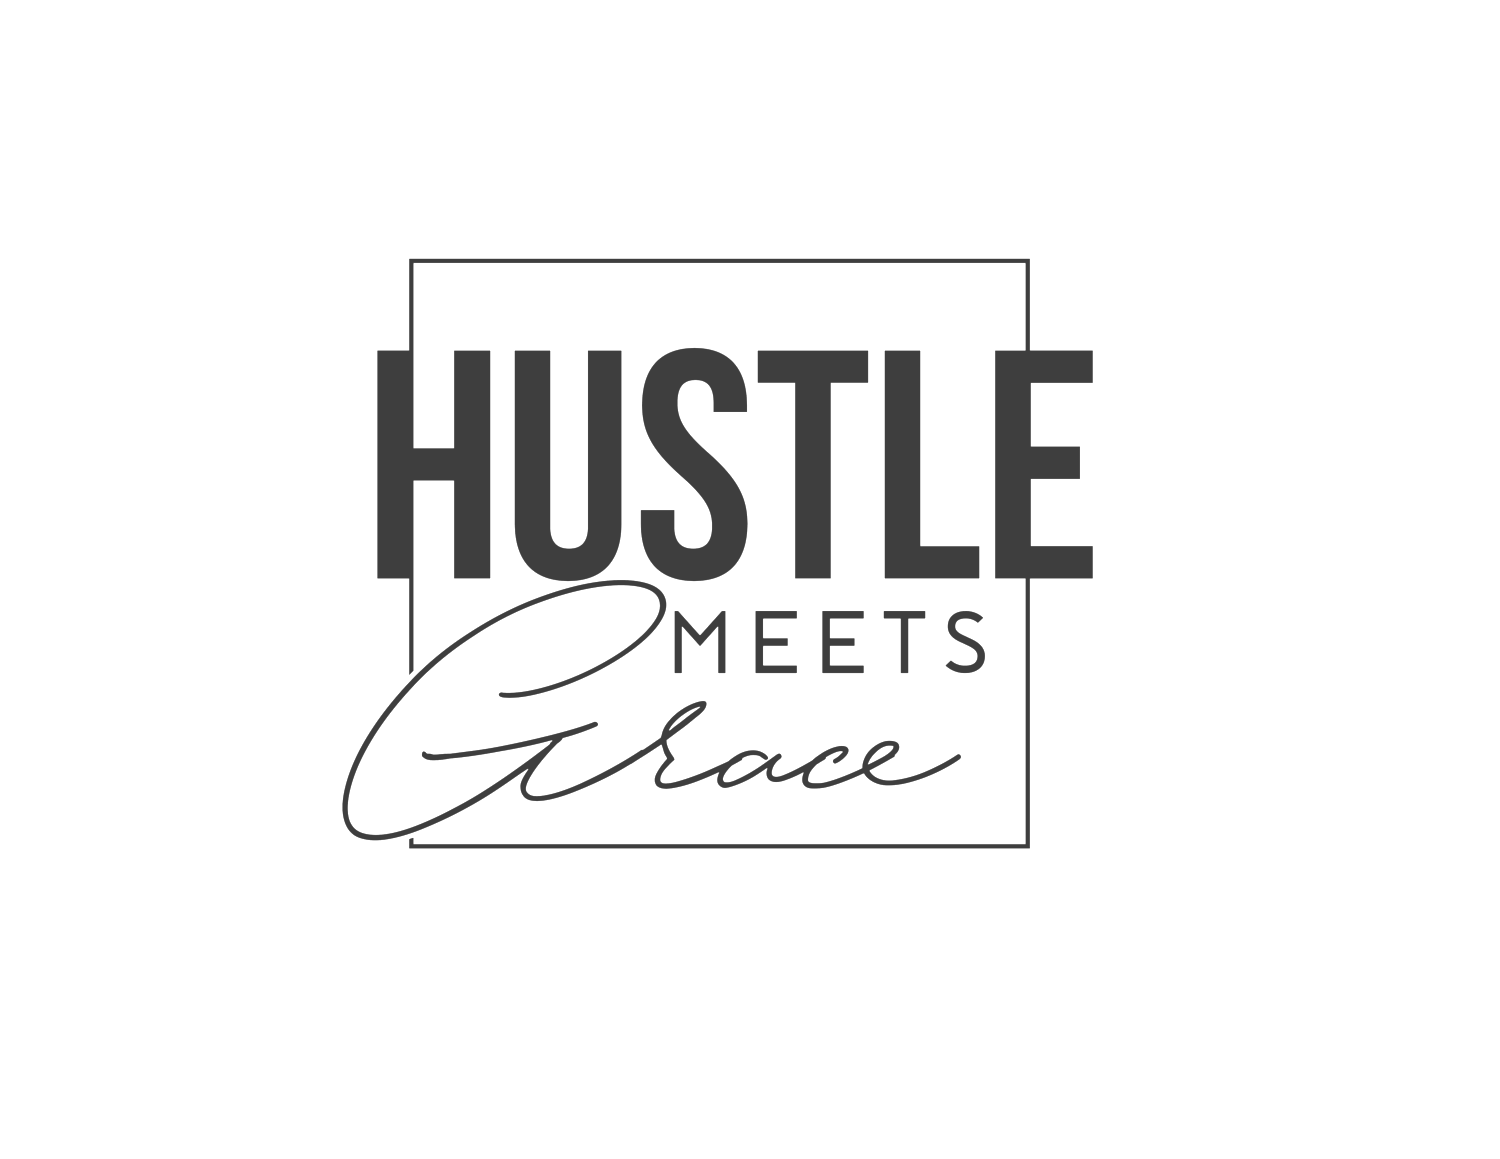 hustle meets grace